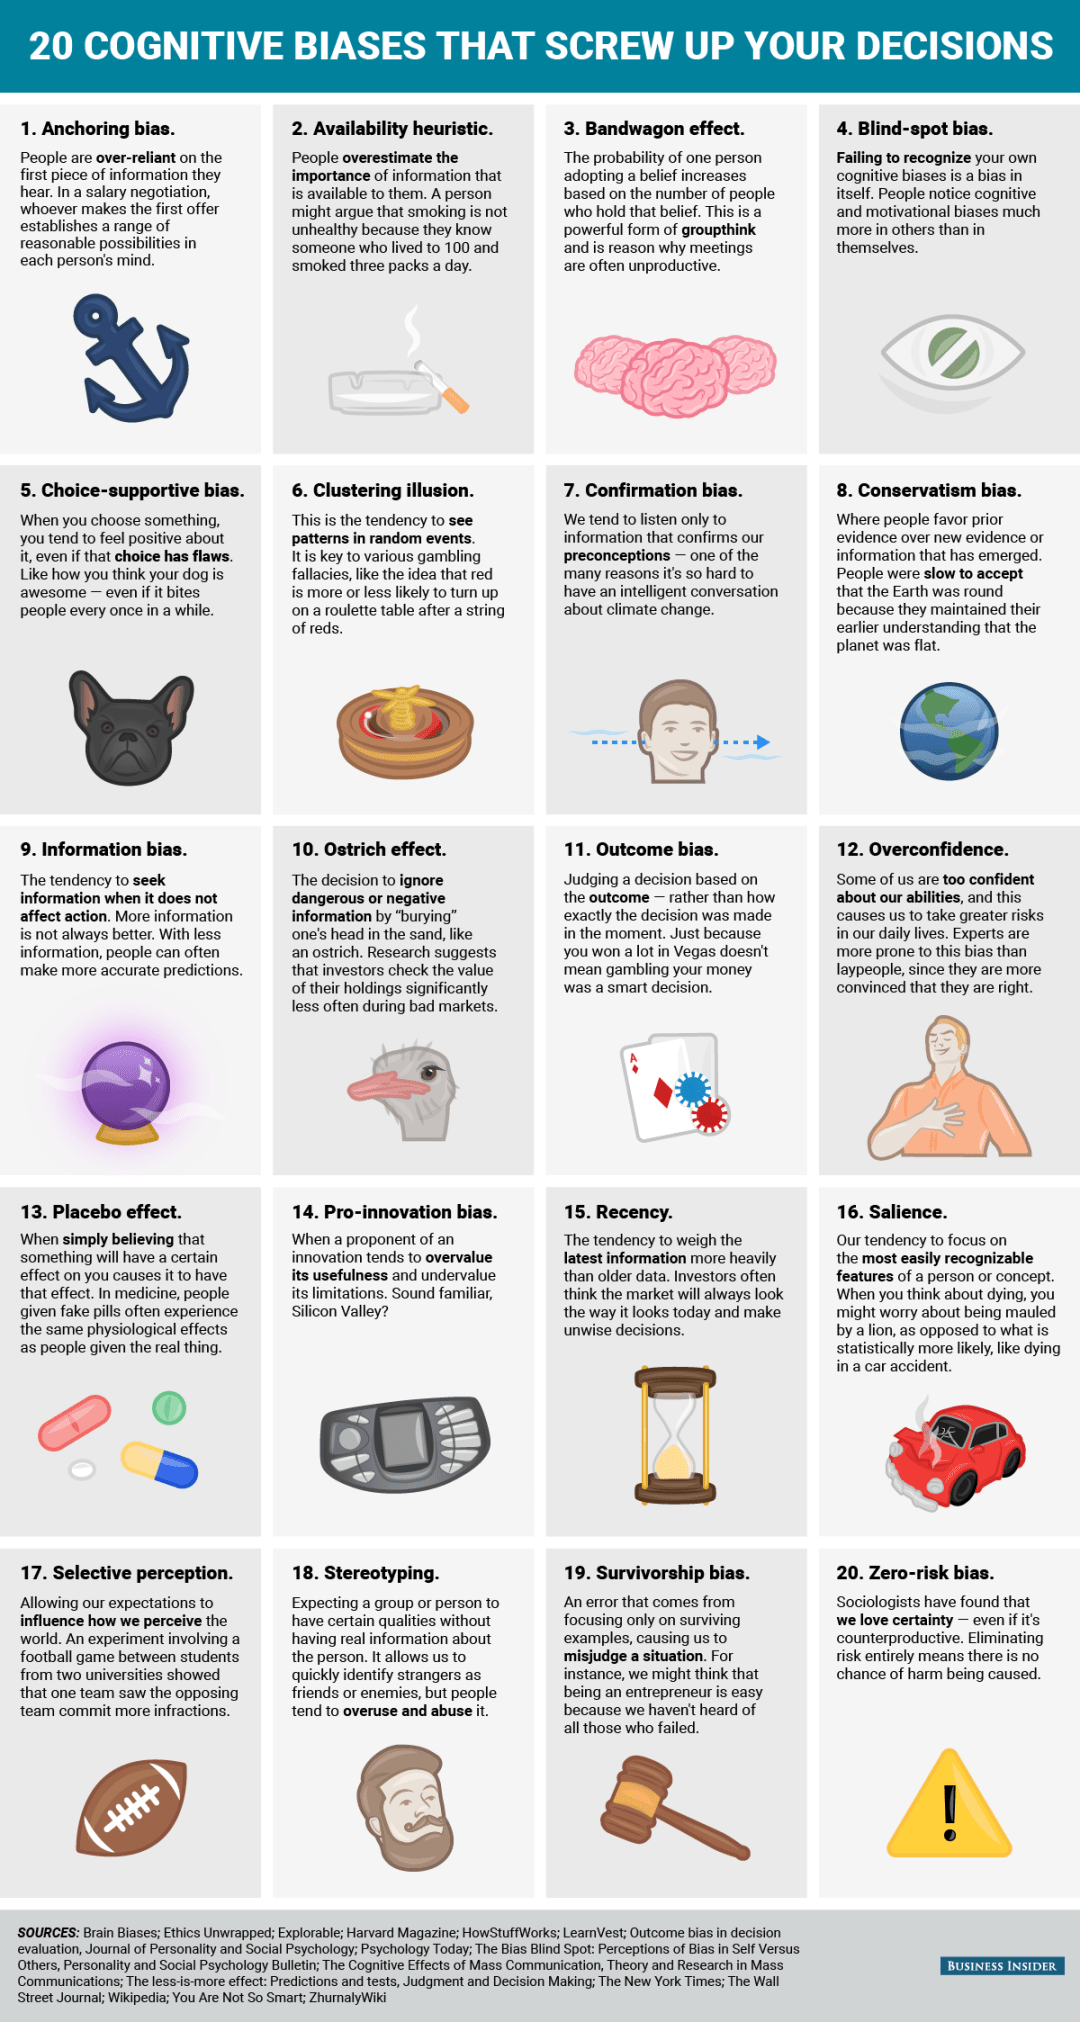 bi_graphics_20-cognitive-biases-that-screw-up-your-decisions